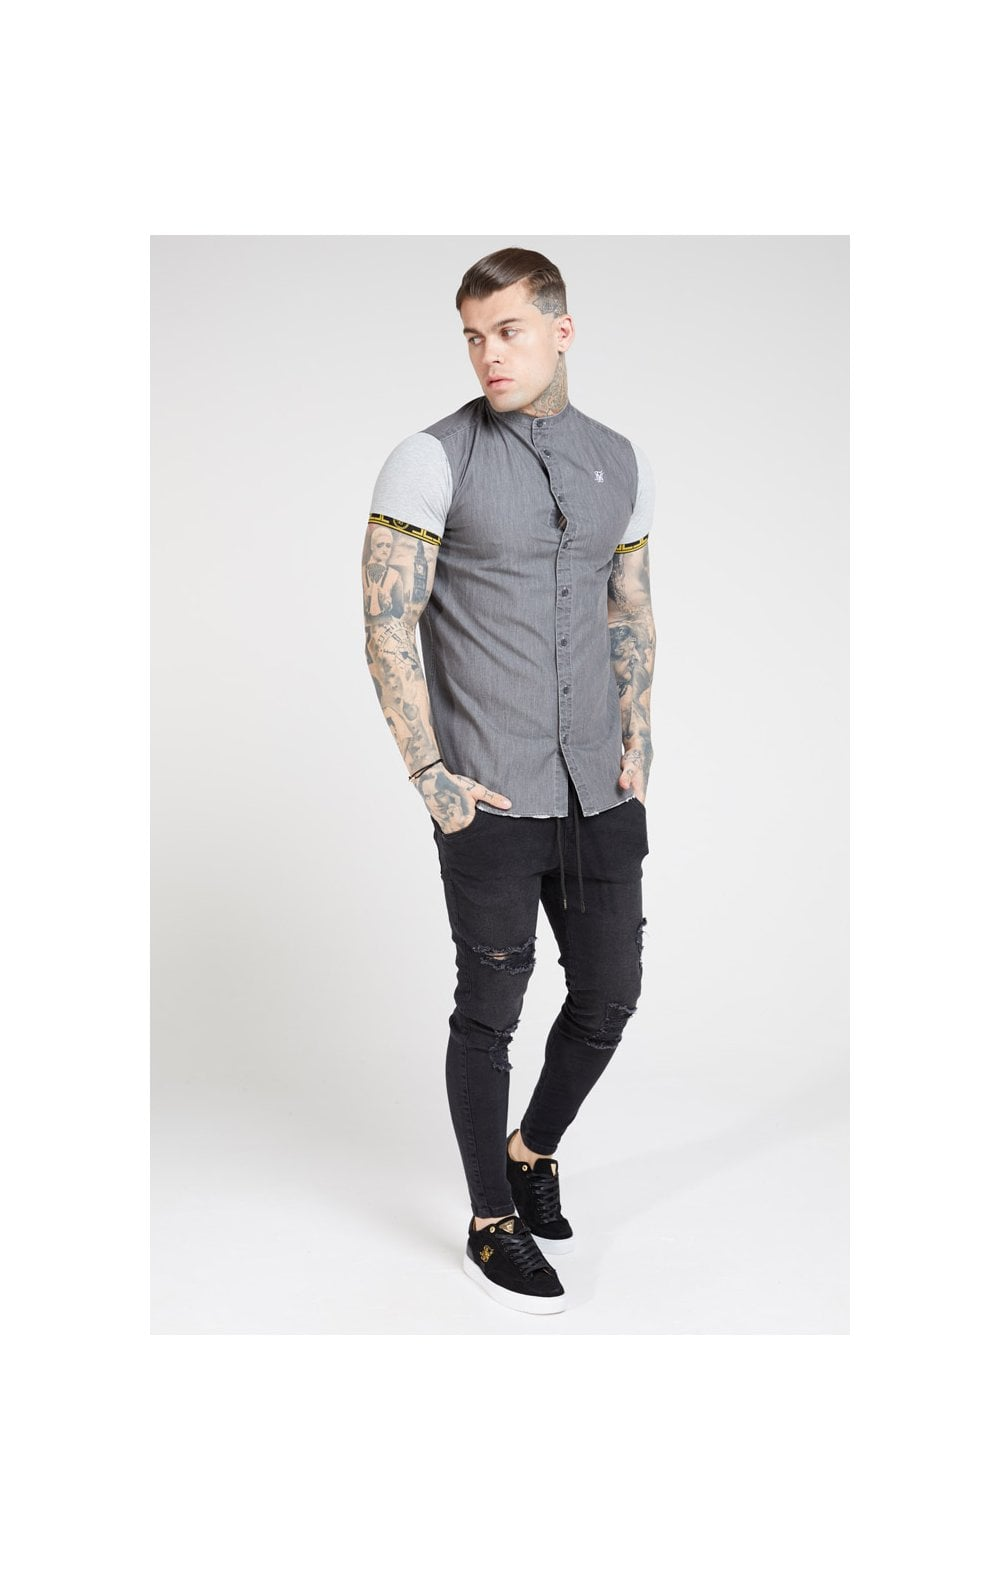 SikSilk S/S Denim Shirt – Grey (4)